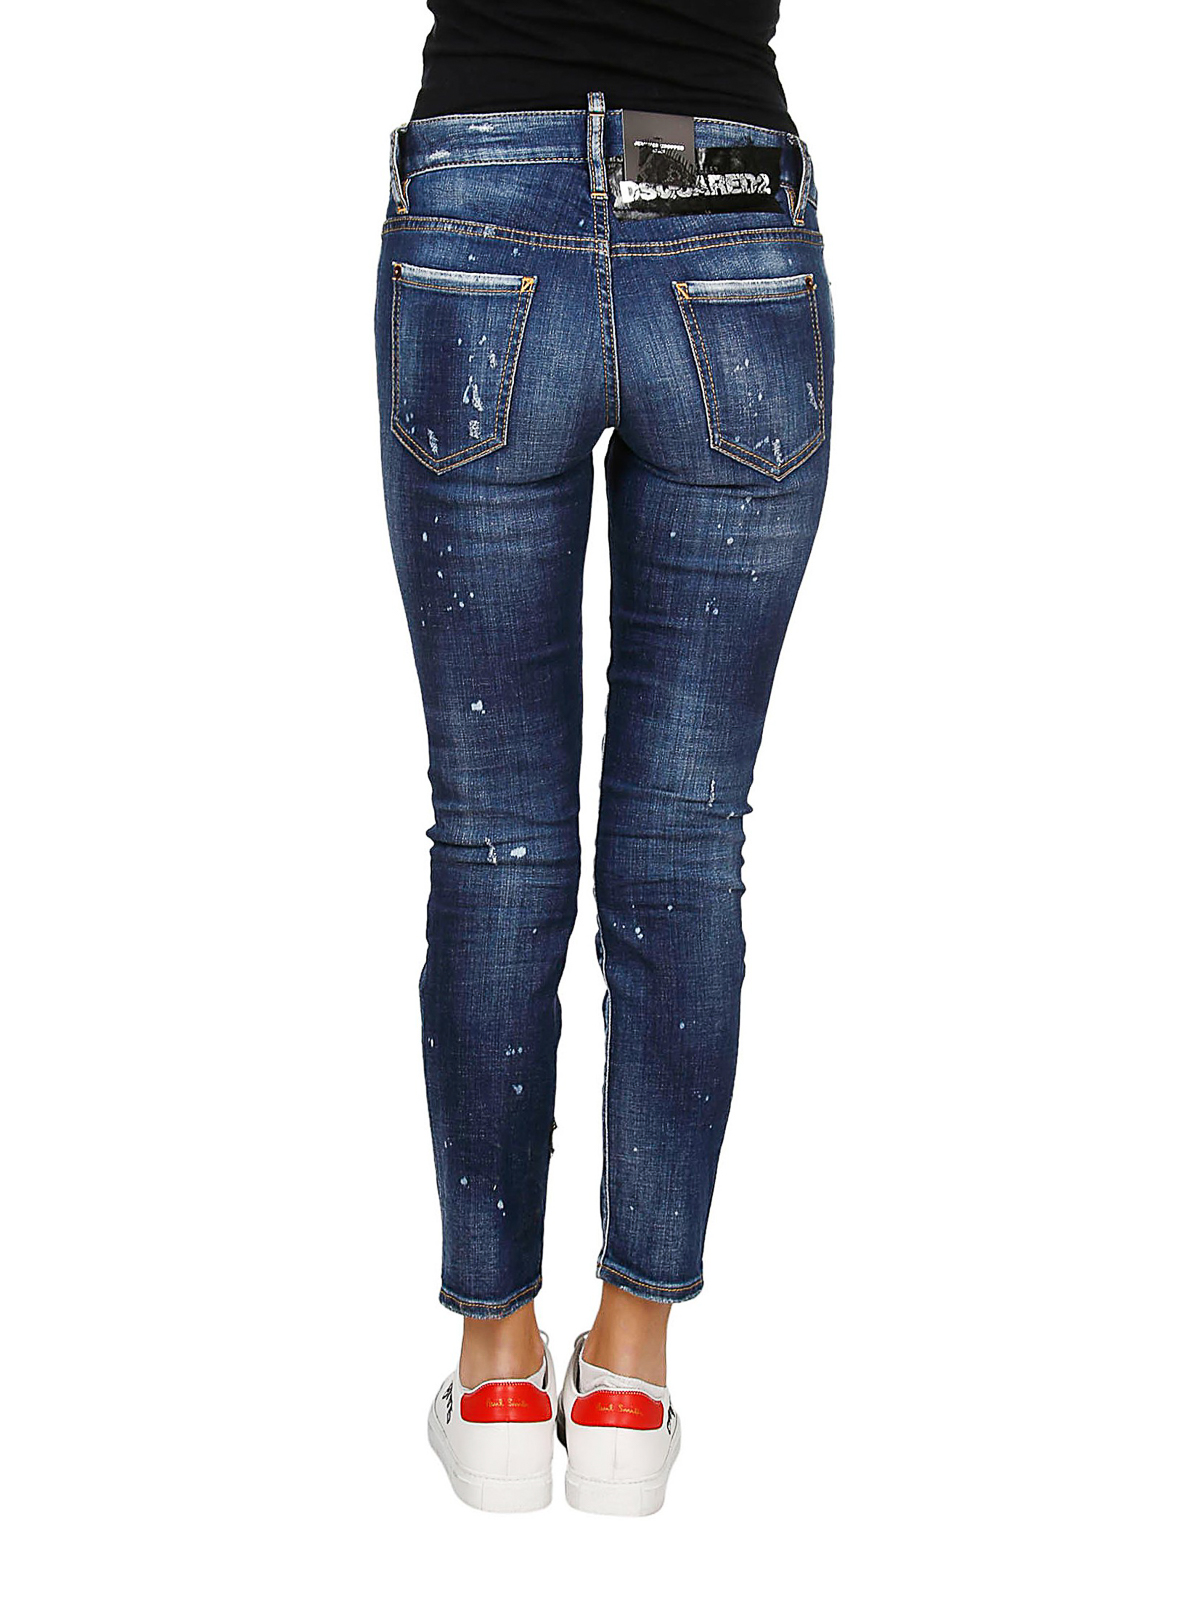 53aa277d80f Dsquared2 - Perfection Jennifer crop jeans - skinny jeans ...